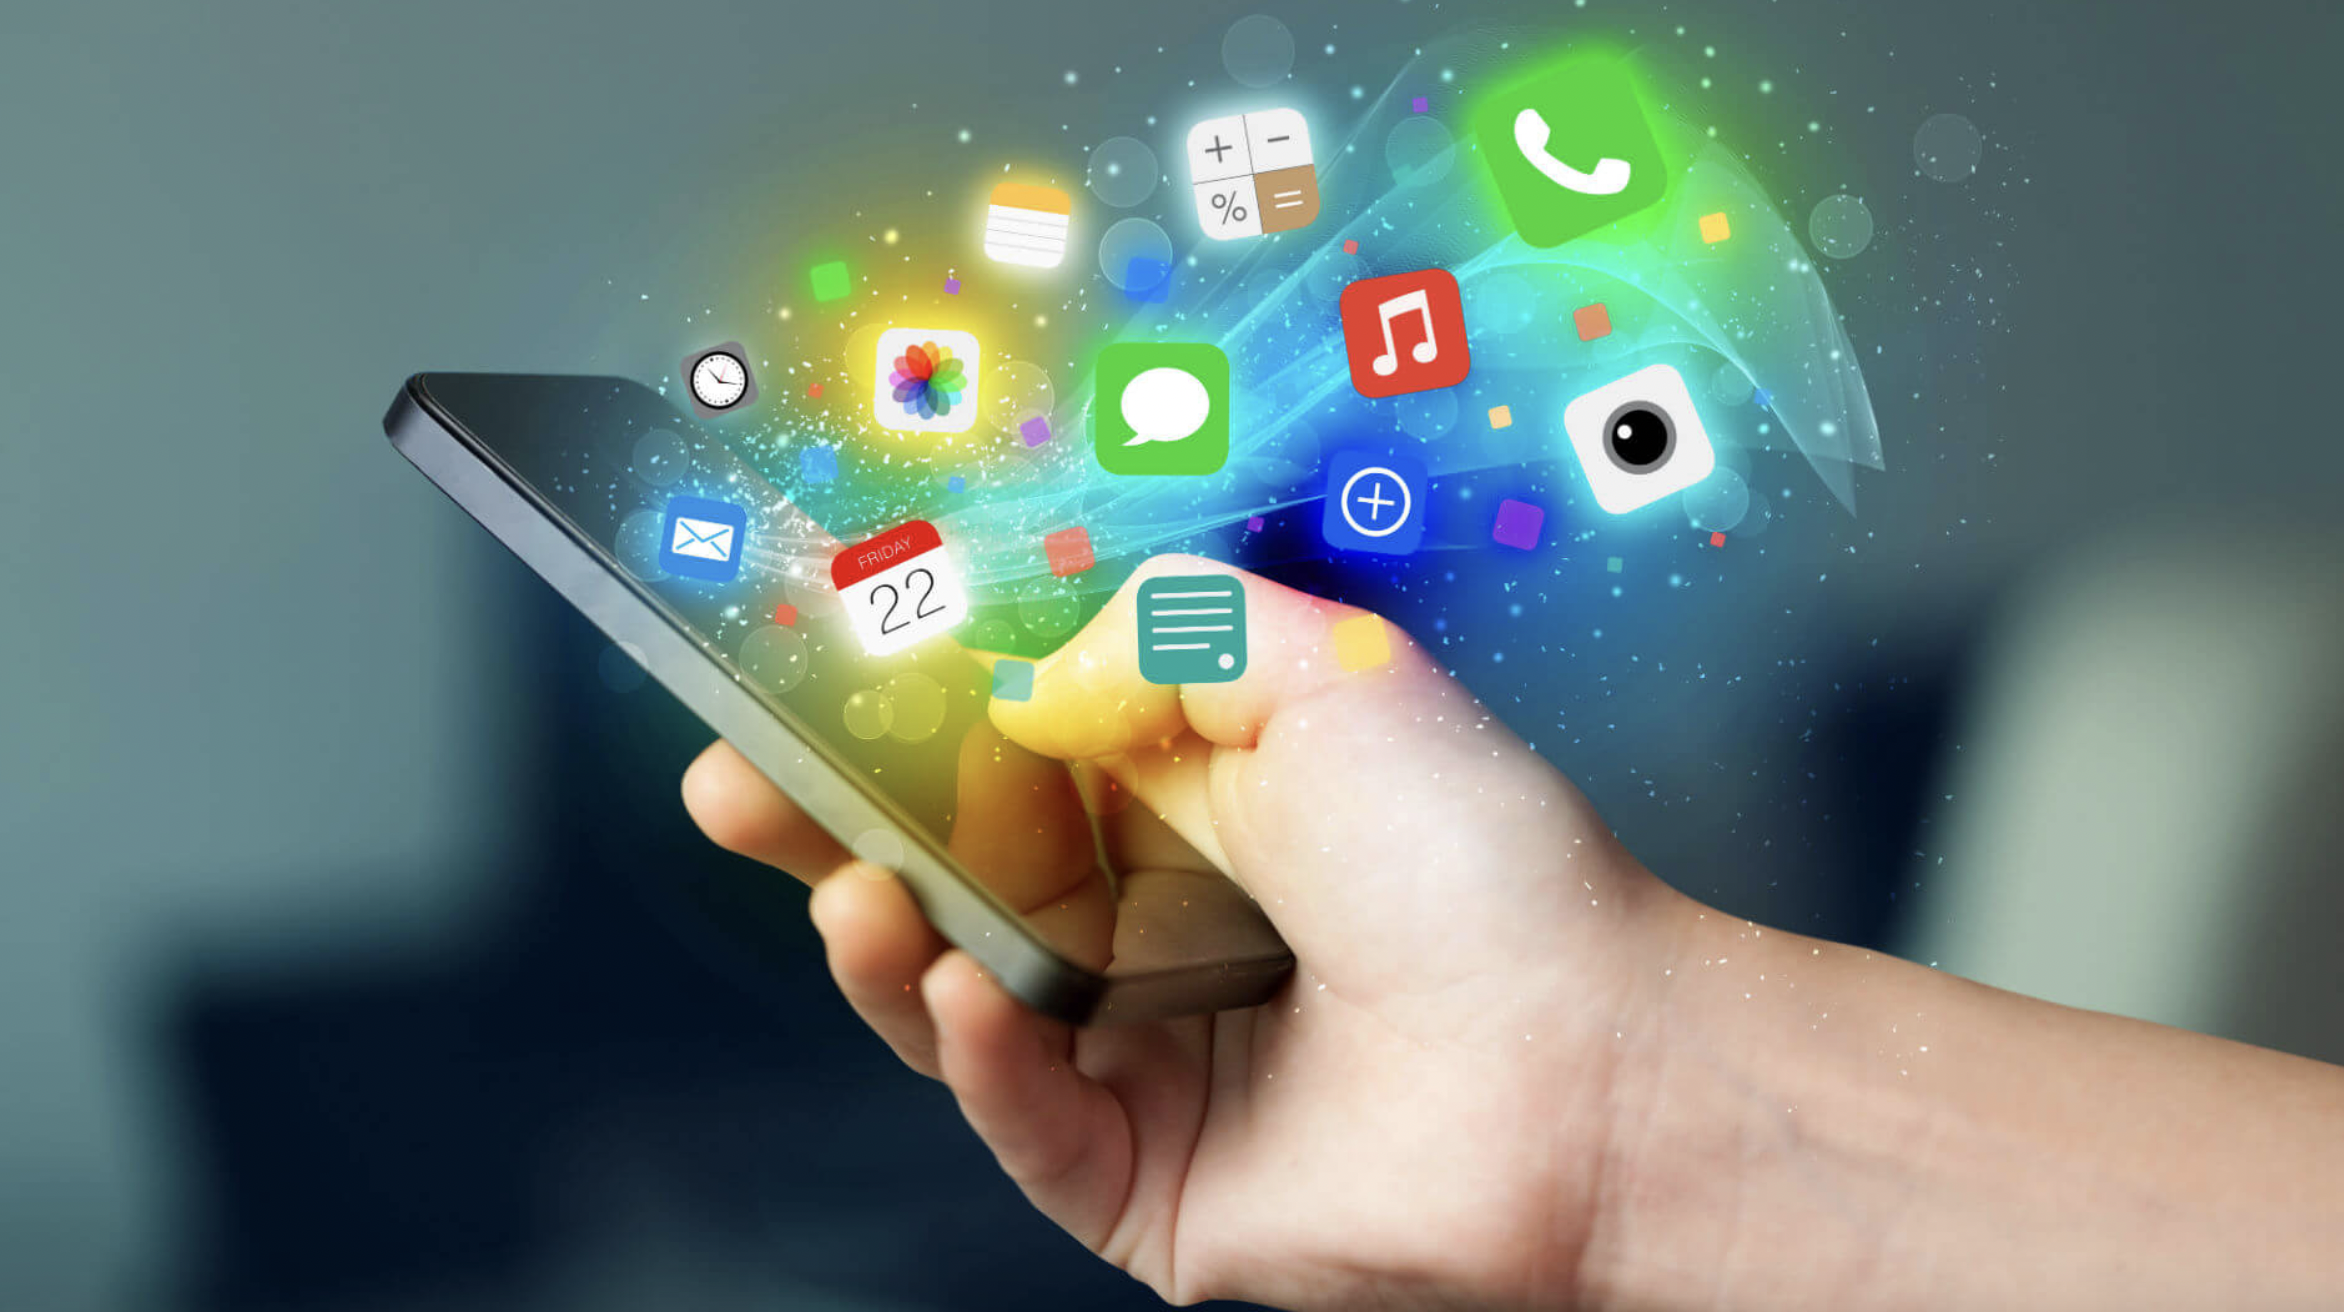 5 Reasons For The Success Of The Smartphone